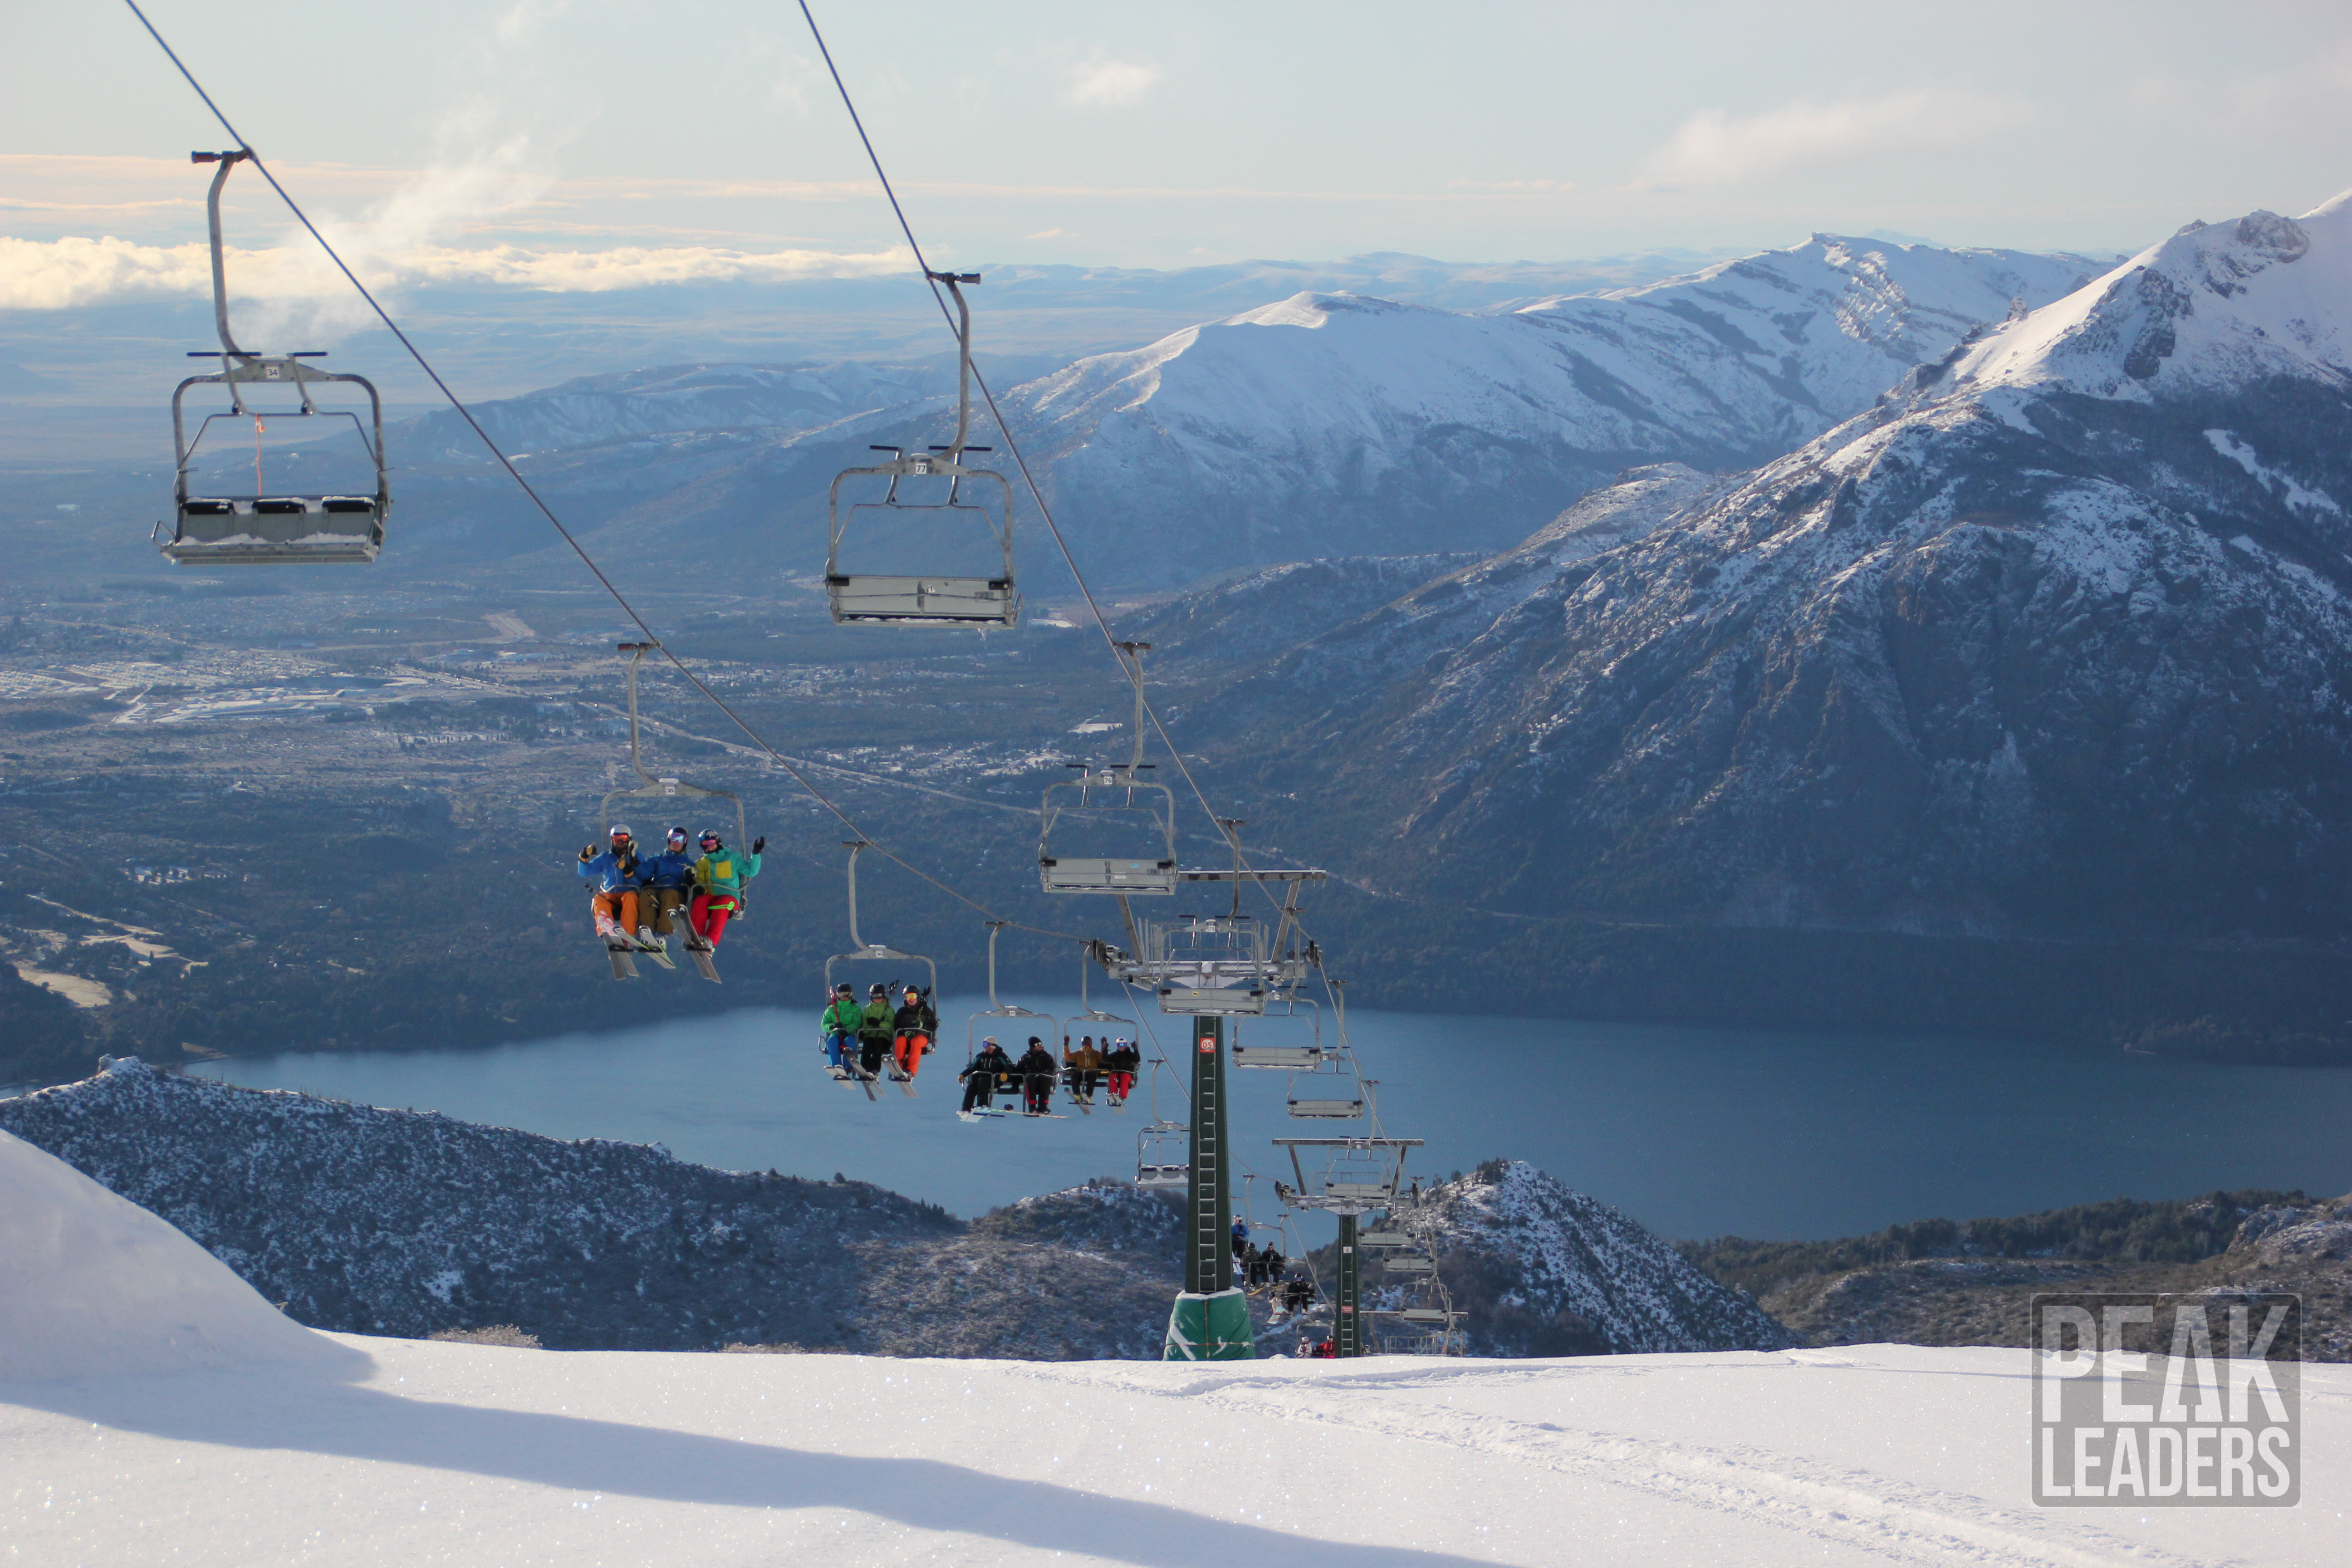 Mountain vistas and a chairlift point of view